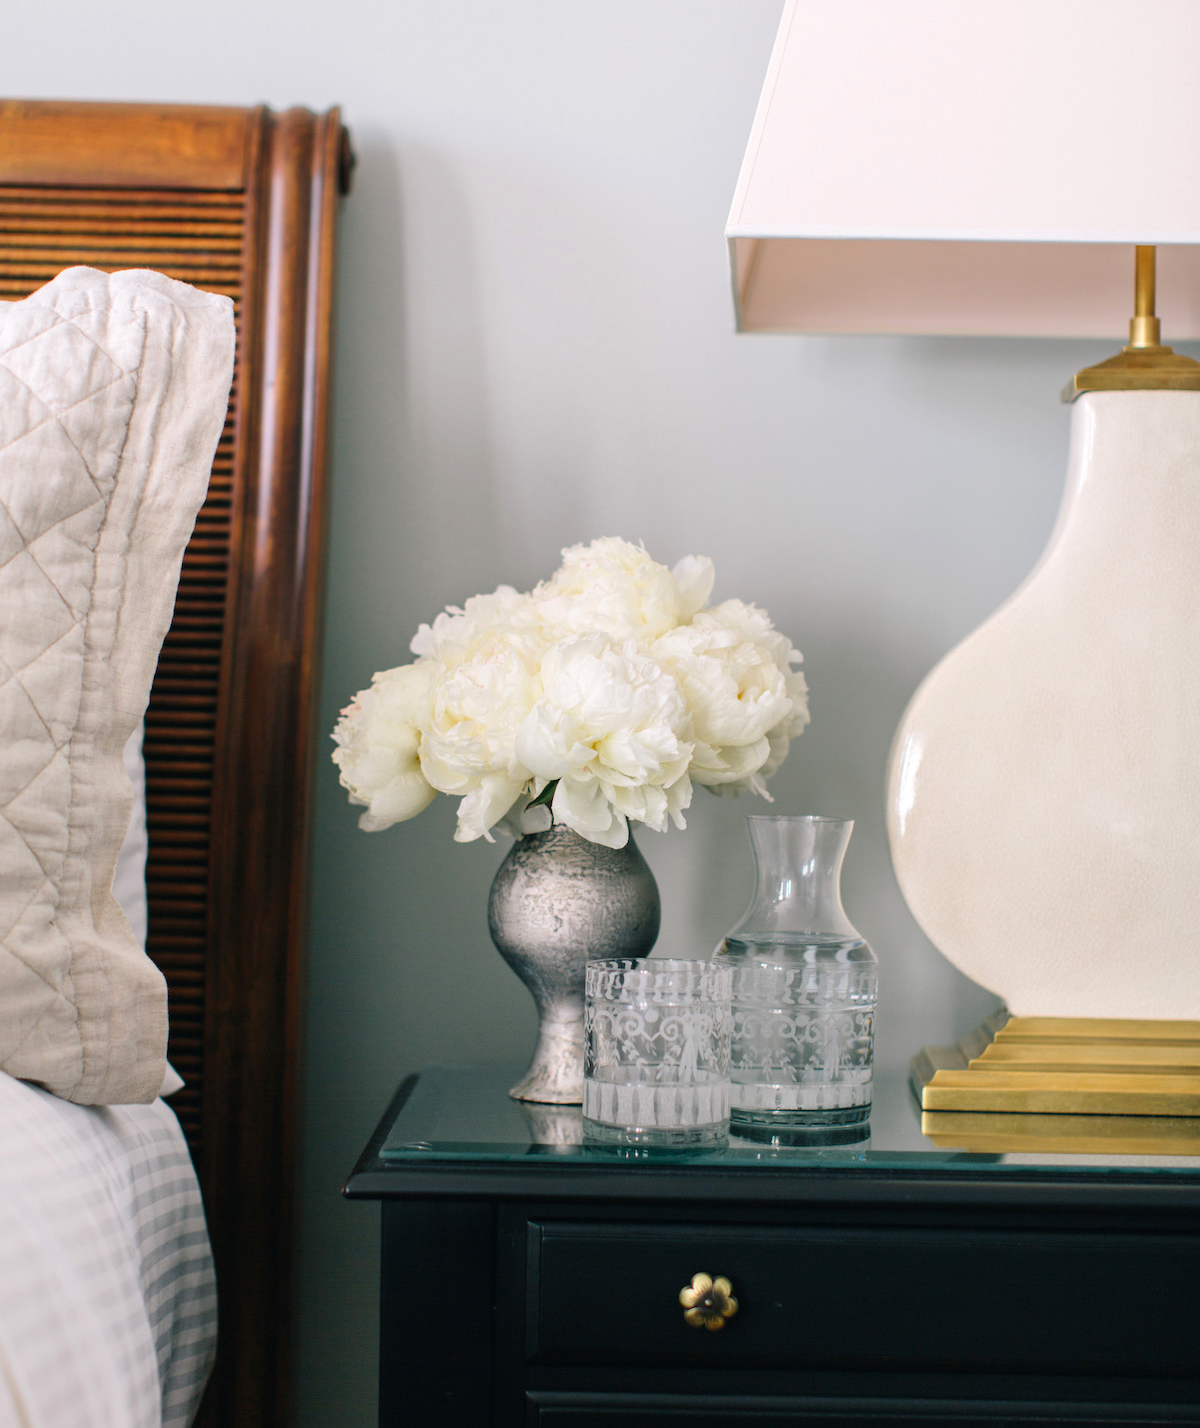 Nightstand with flowers, etched glass and decanter